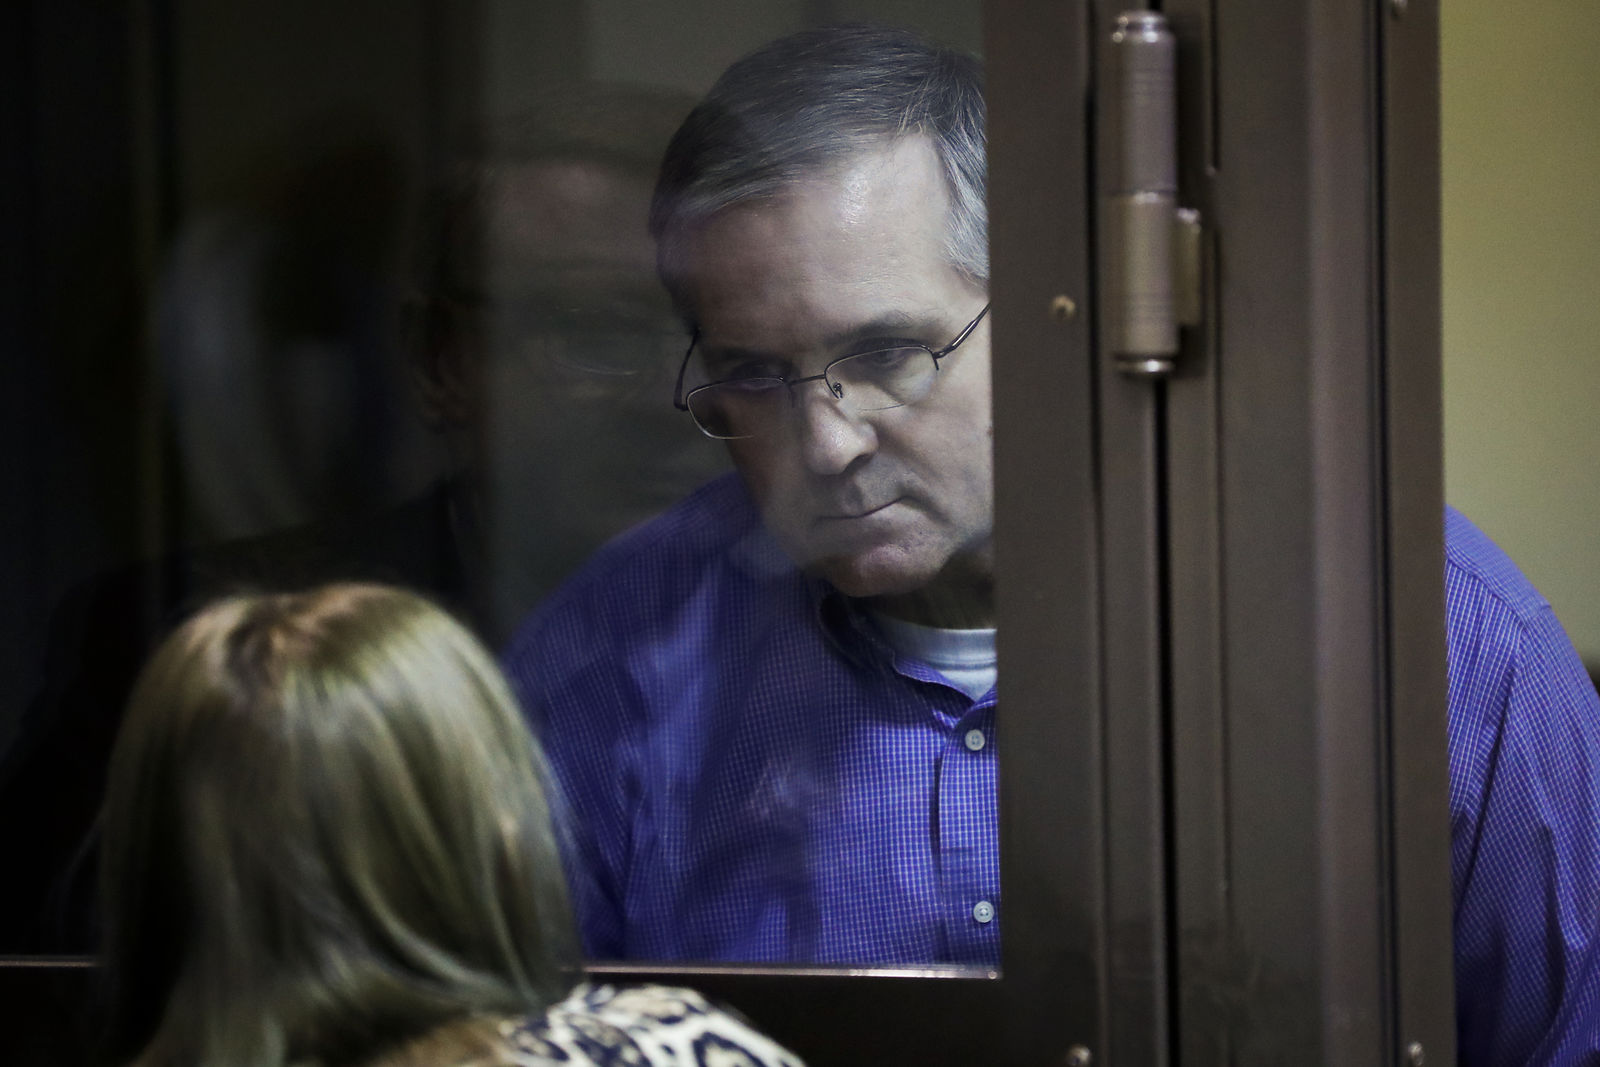 Paul Whelan, a former U.S. Marine, who was arrested in Moscow at the end of last year looks through a cage's glass as he speaks to his lawyer in a court room in Moscow, Russia, Tuesday, Jan. 22, 2019. (AP Photo/Pavel Golovkin)